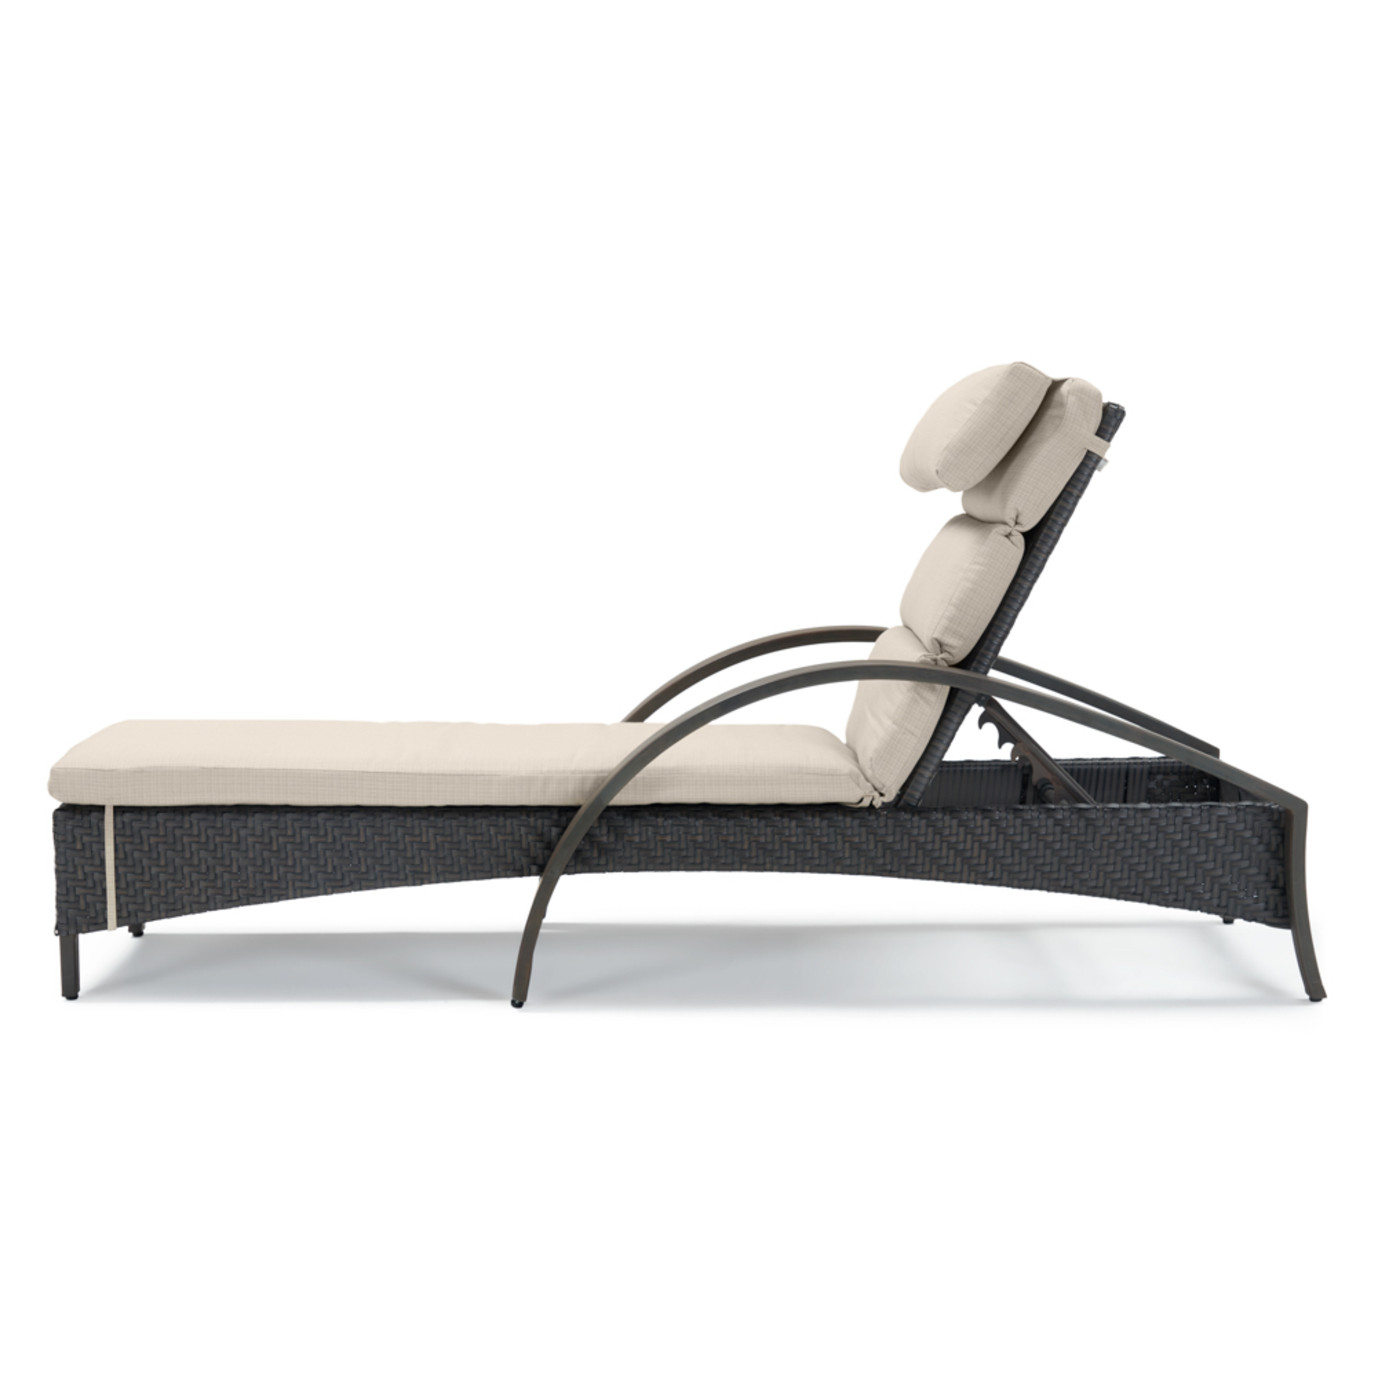 Barcelo™ Chaise Lounge 2pk - Slate Gray